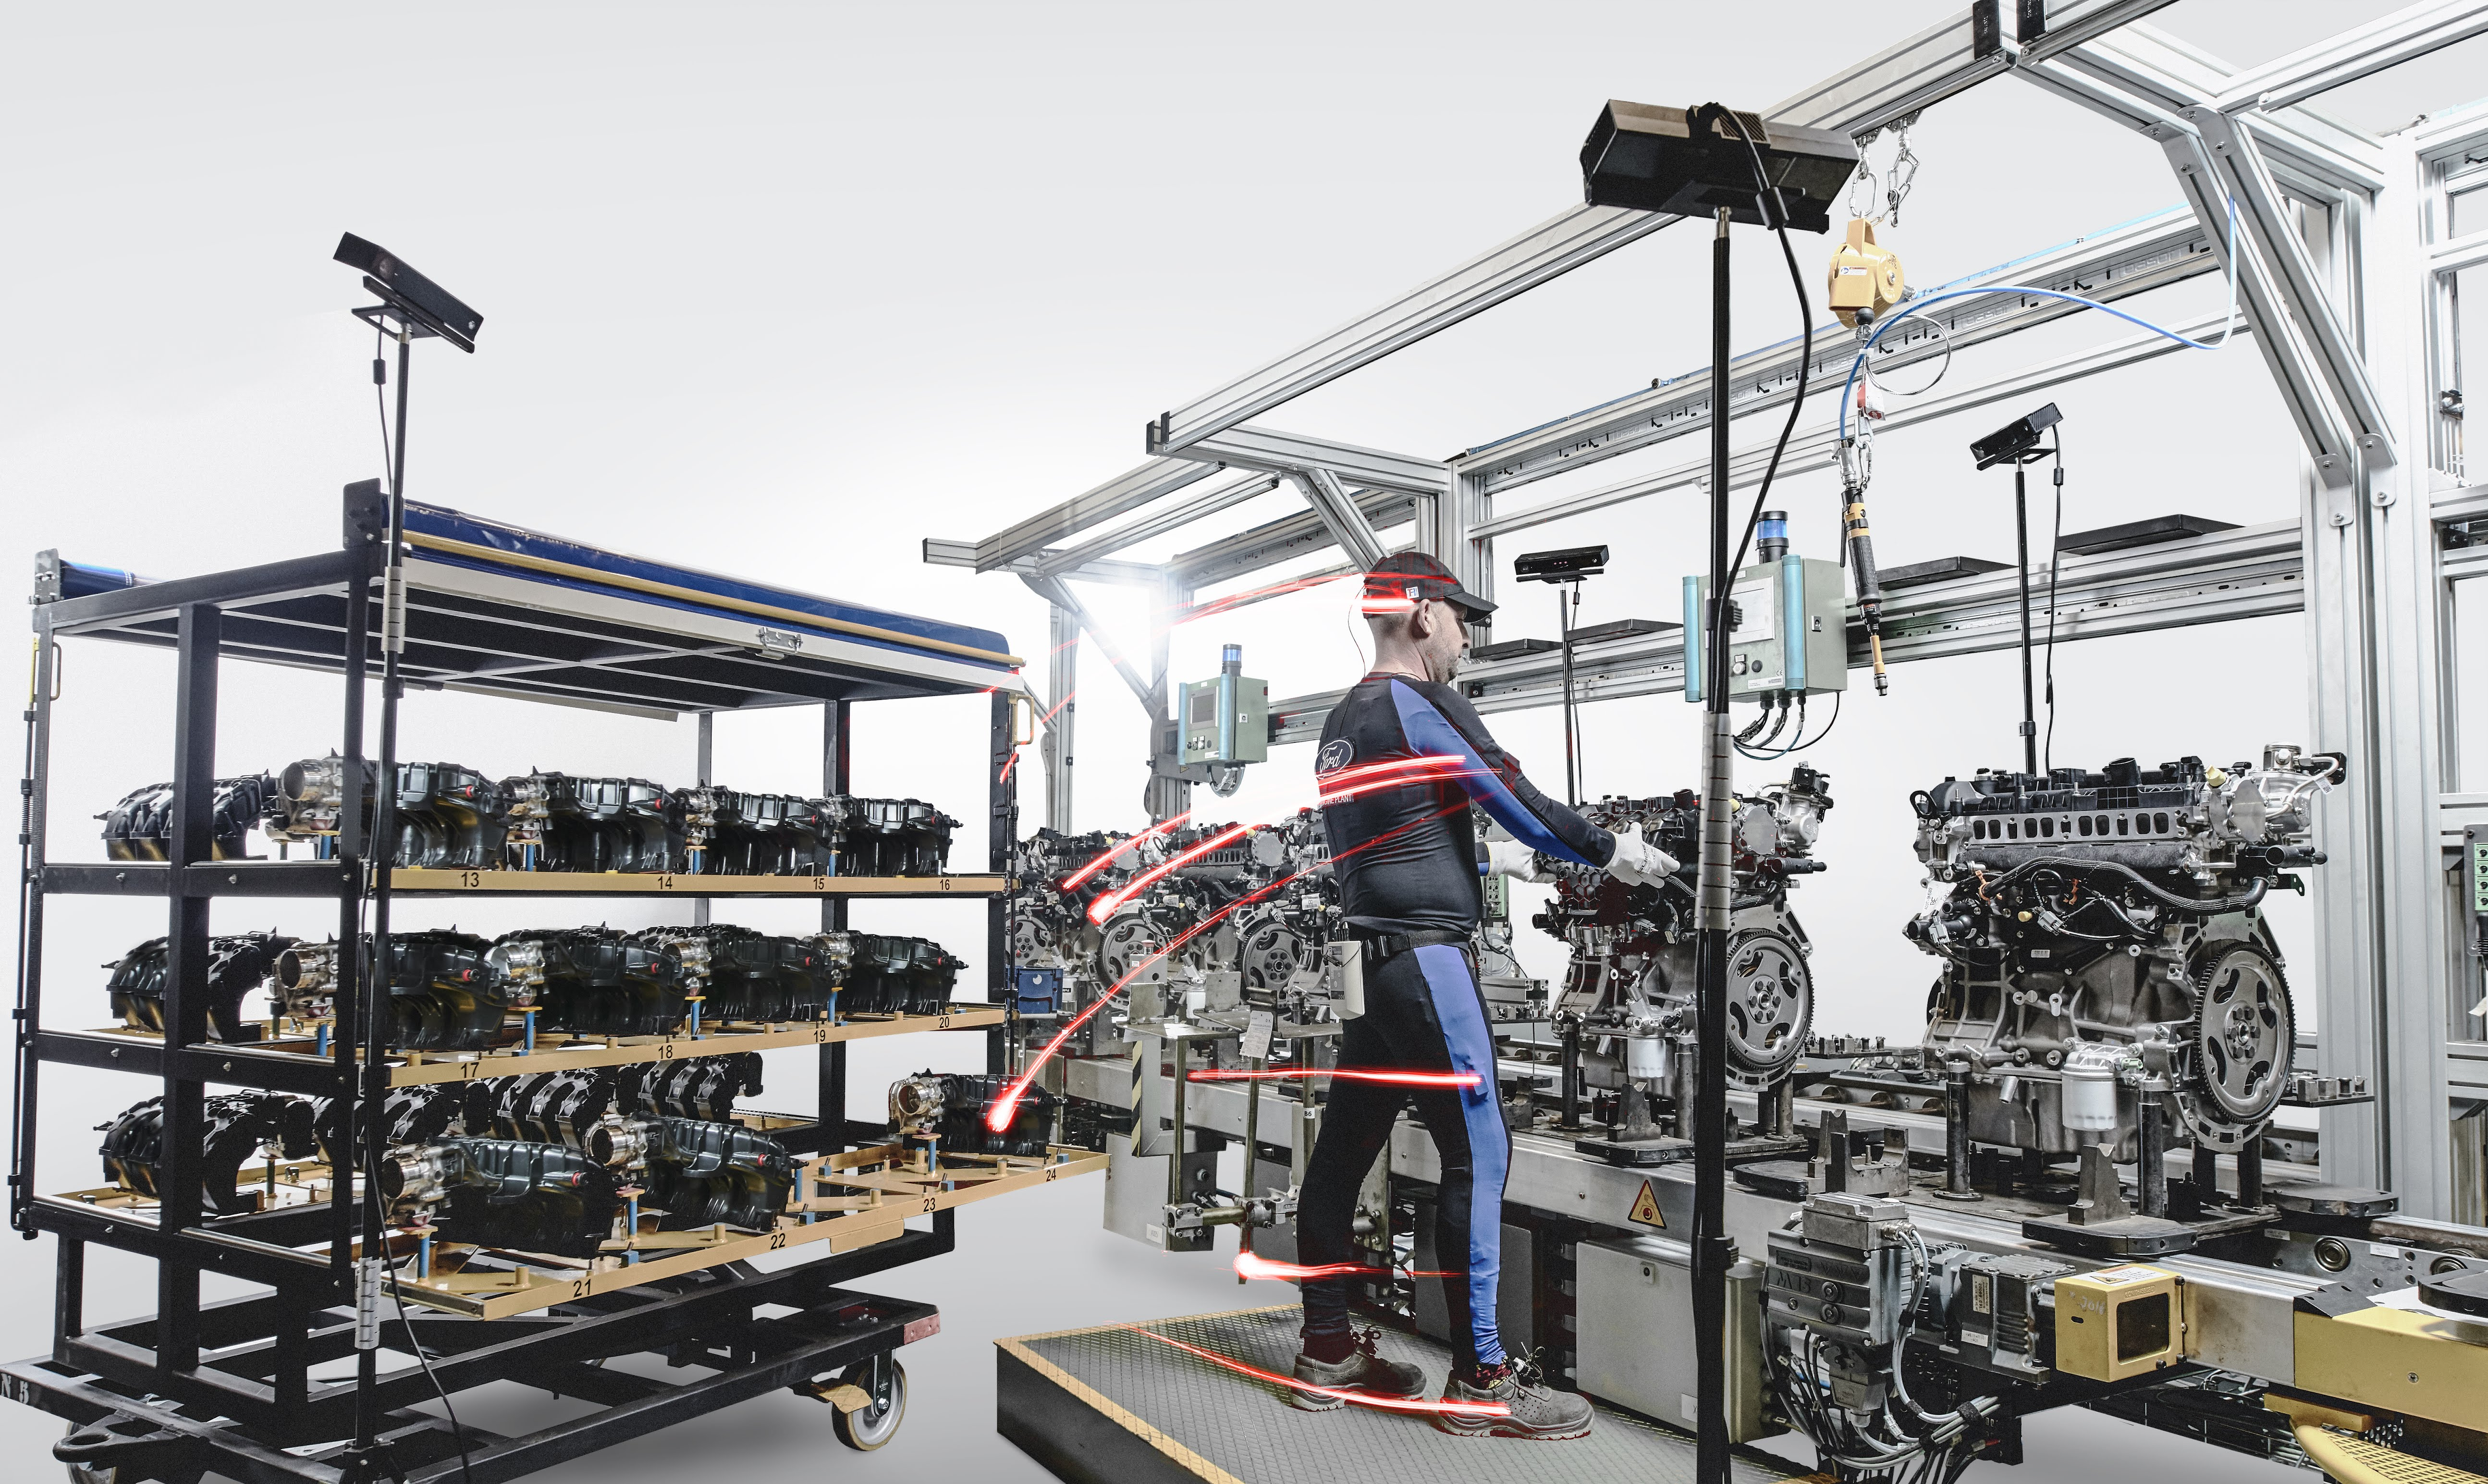 Ford employs body tracking technology on the assembly line at the Valencia engine plant, where workers wear special suits with sensors to promote good posture, just as sport stars perfect technique and replicate signature moves for video games.